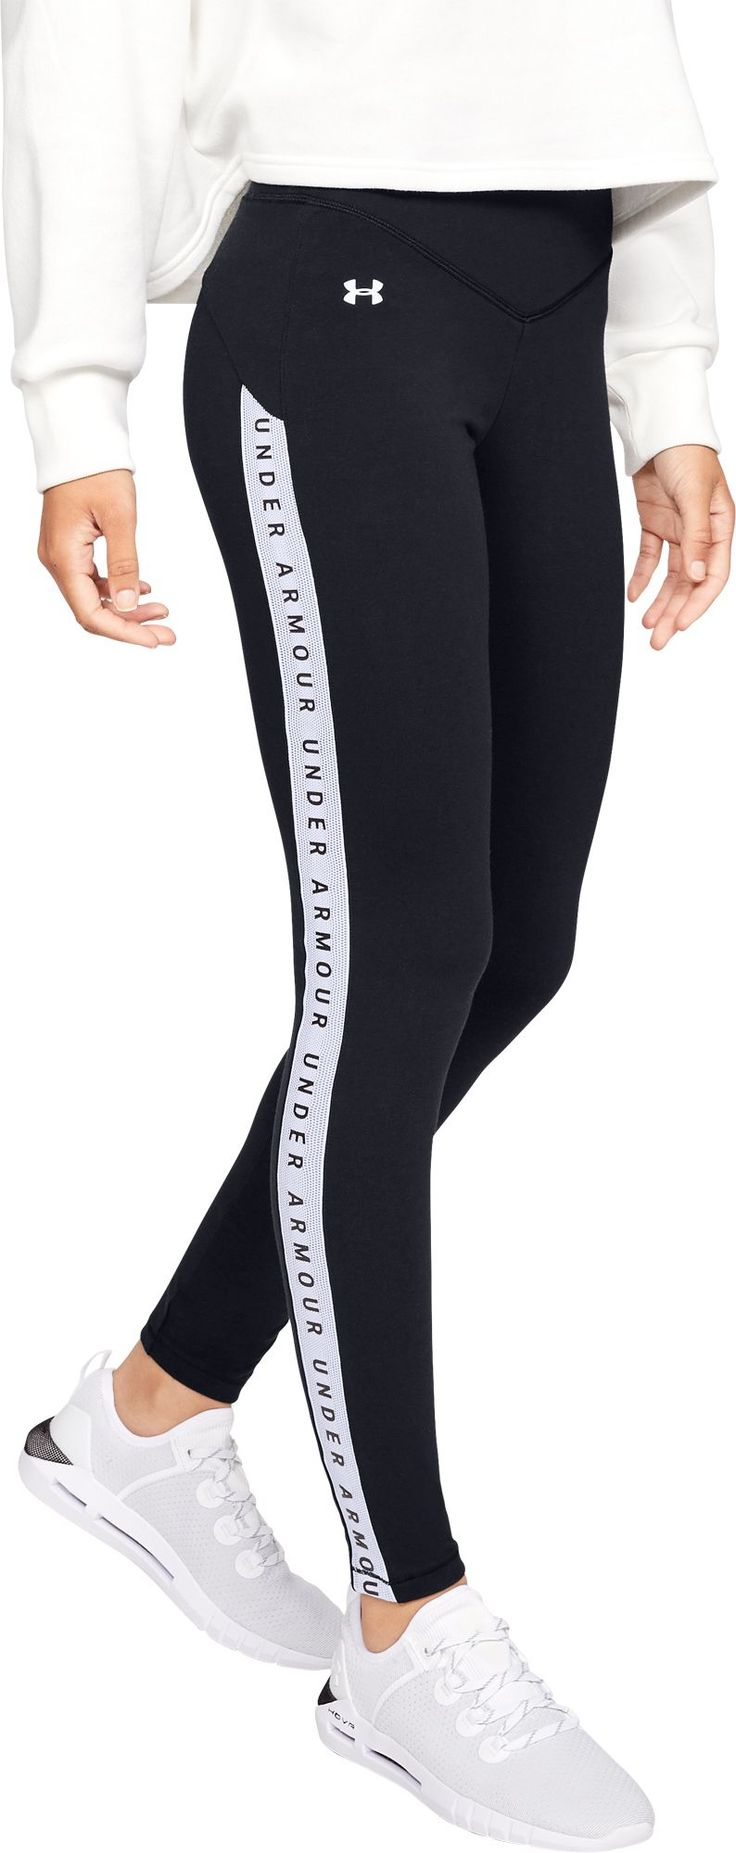 Under Armour Women's Taped Favorite Leggings, Size: XS, Black 4